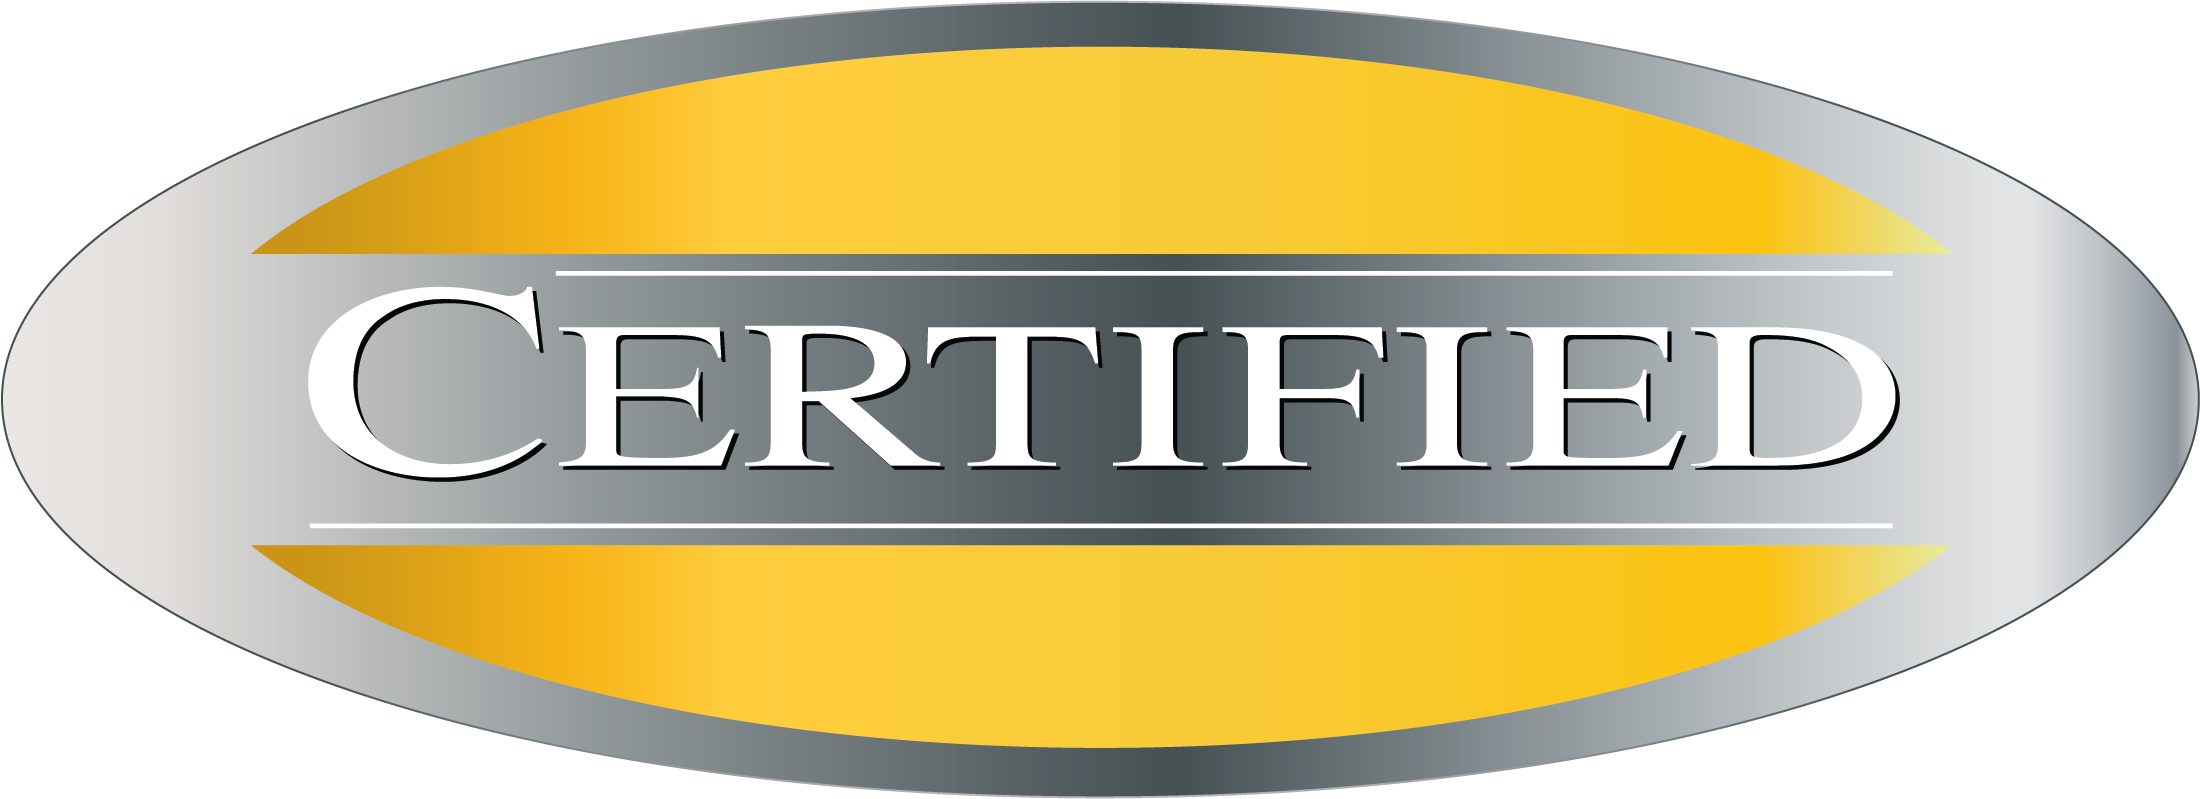 Certified Pest Control logo